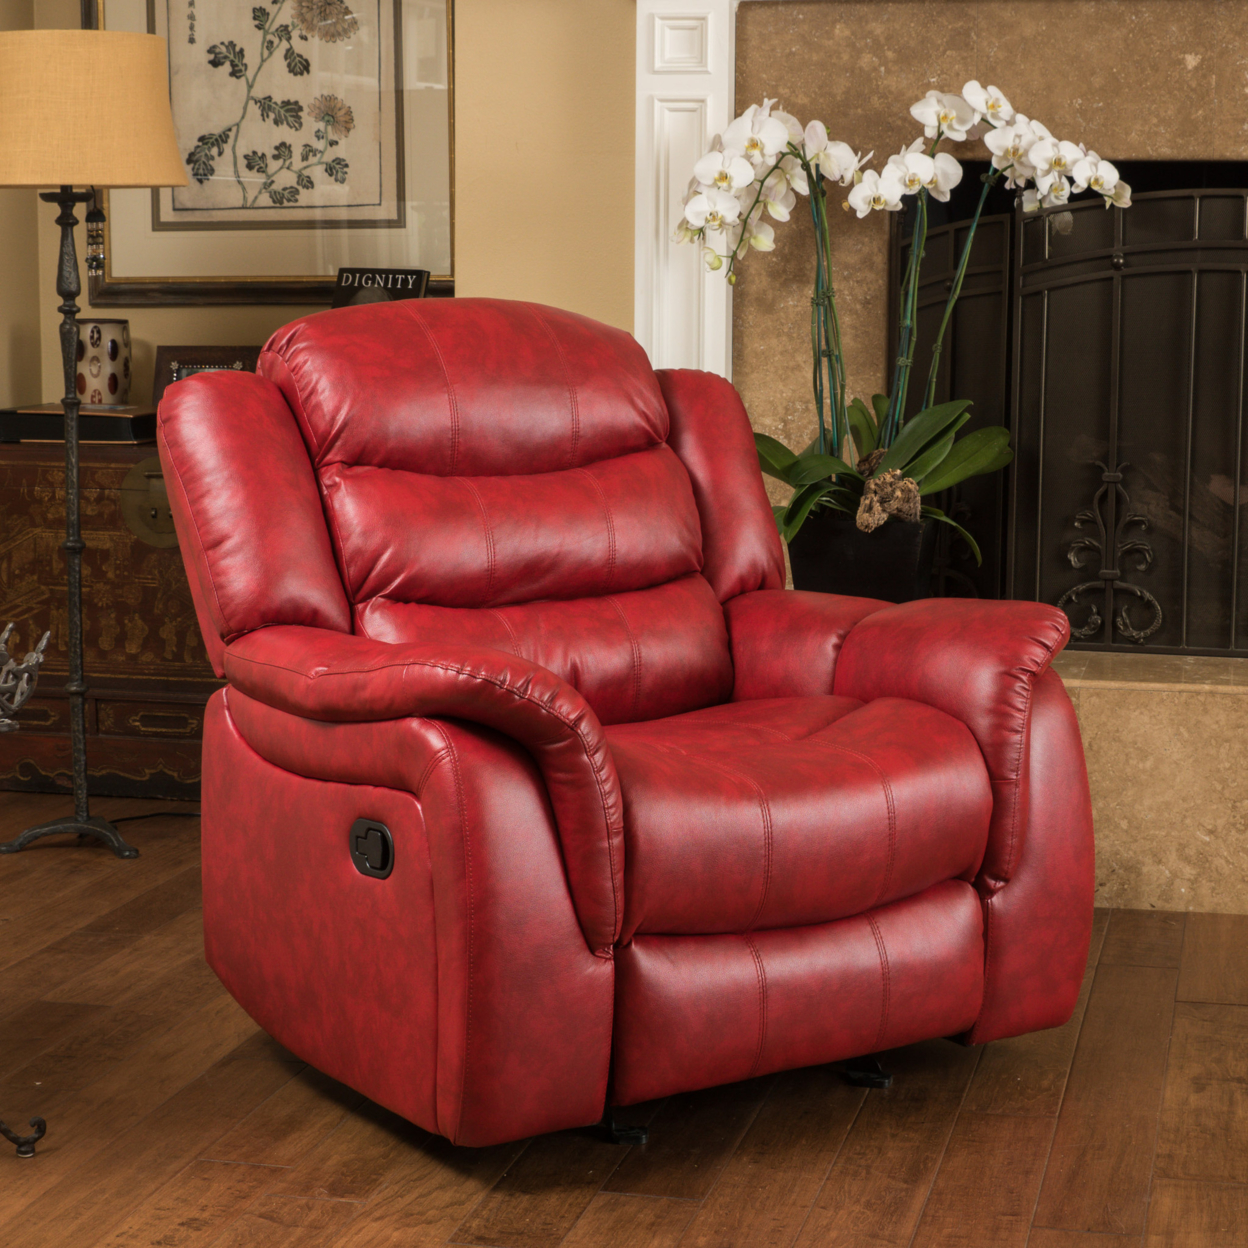 Red Recliner Chairs What Size Exercise Ball For Chair Hidal Contemporary Glider In Living Room From Furniture On Aliexpress Com Alibaba Group